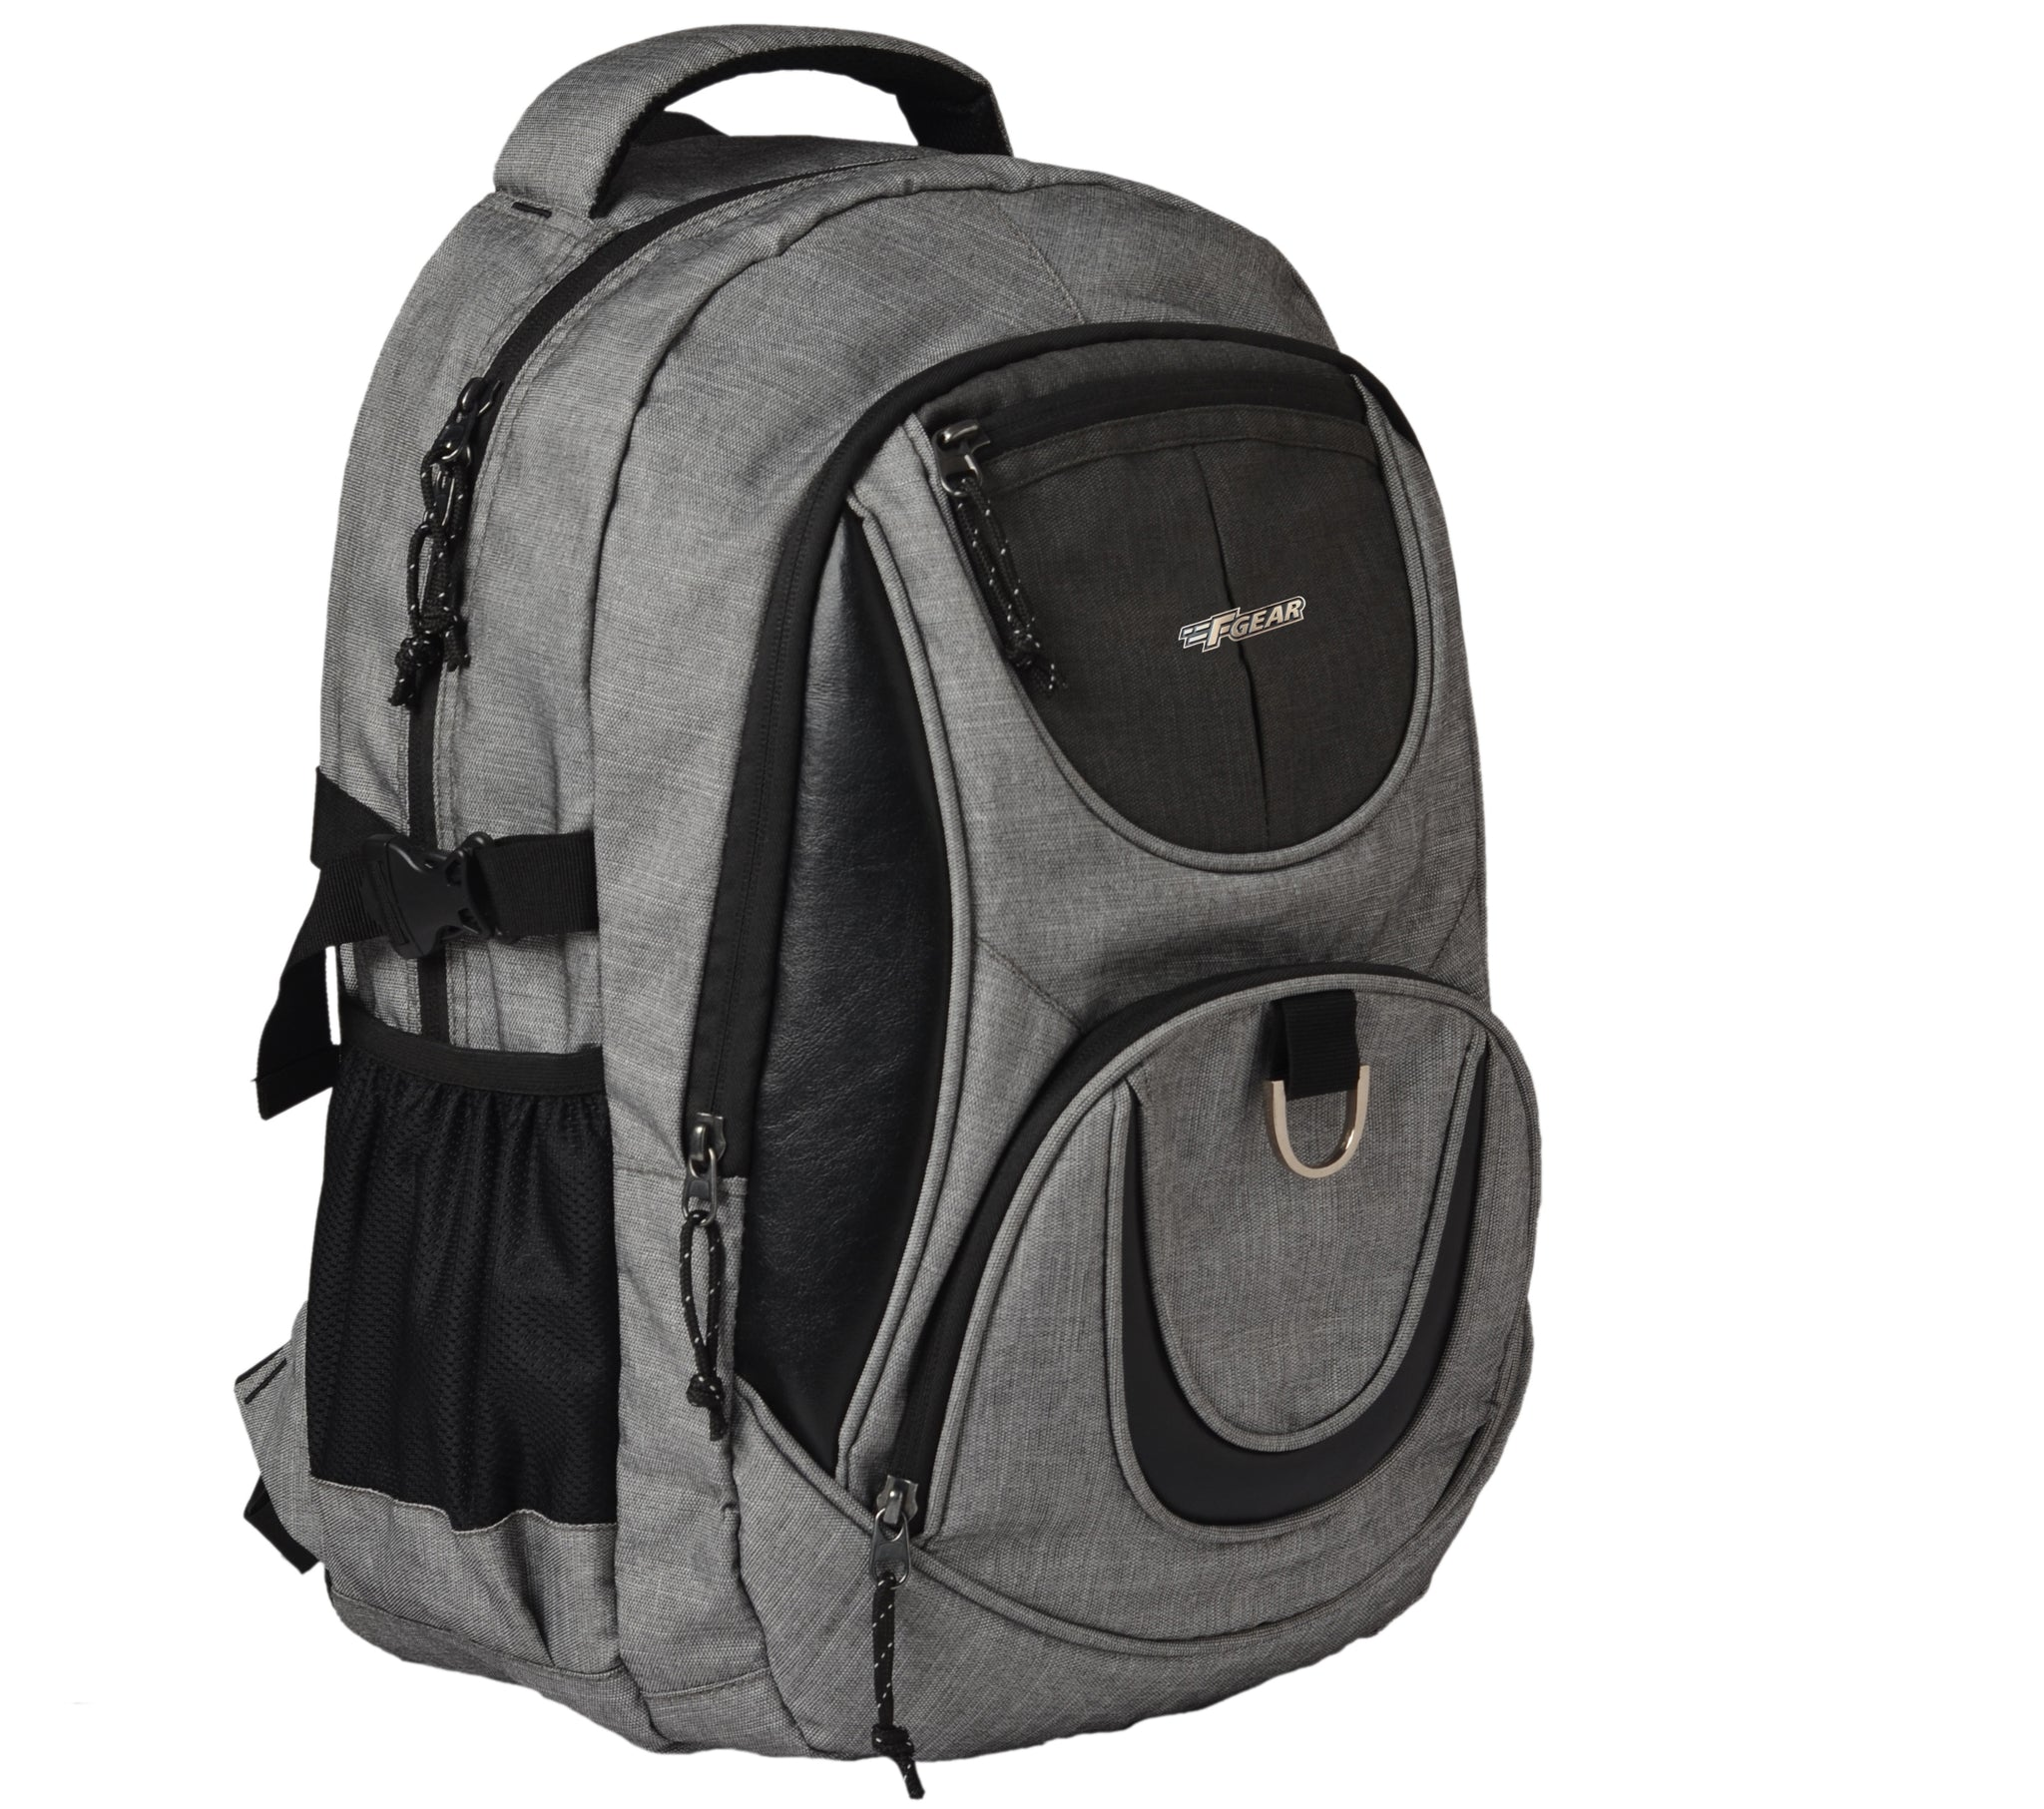 F Gear Axe Melange Light Grey 32 Liters Laptop Backpack with Rain Cover (2705)